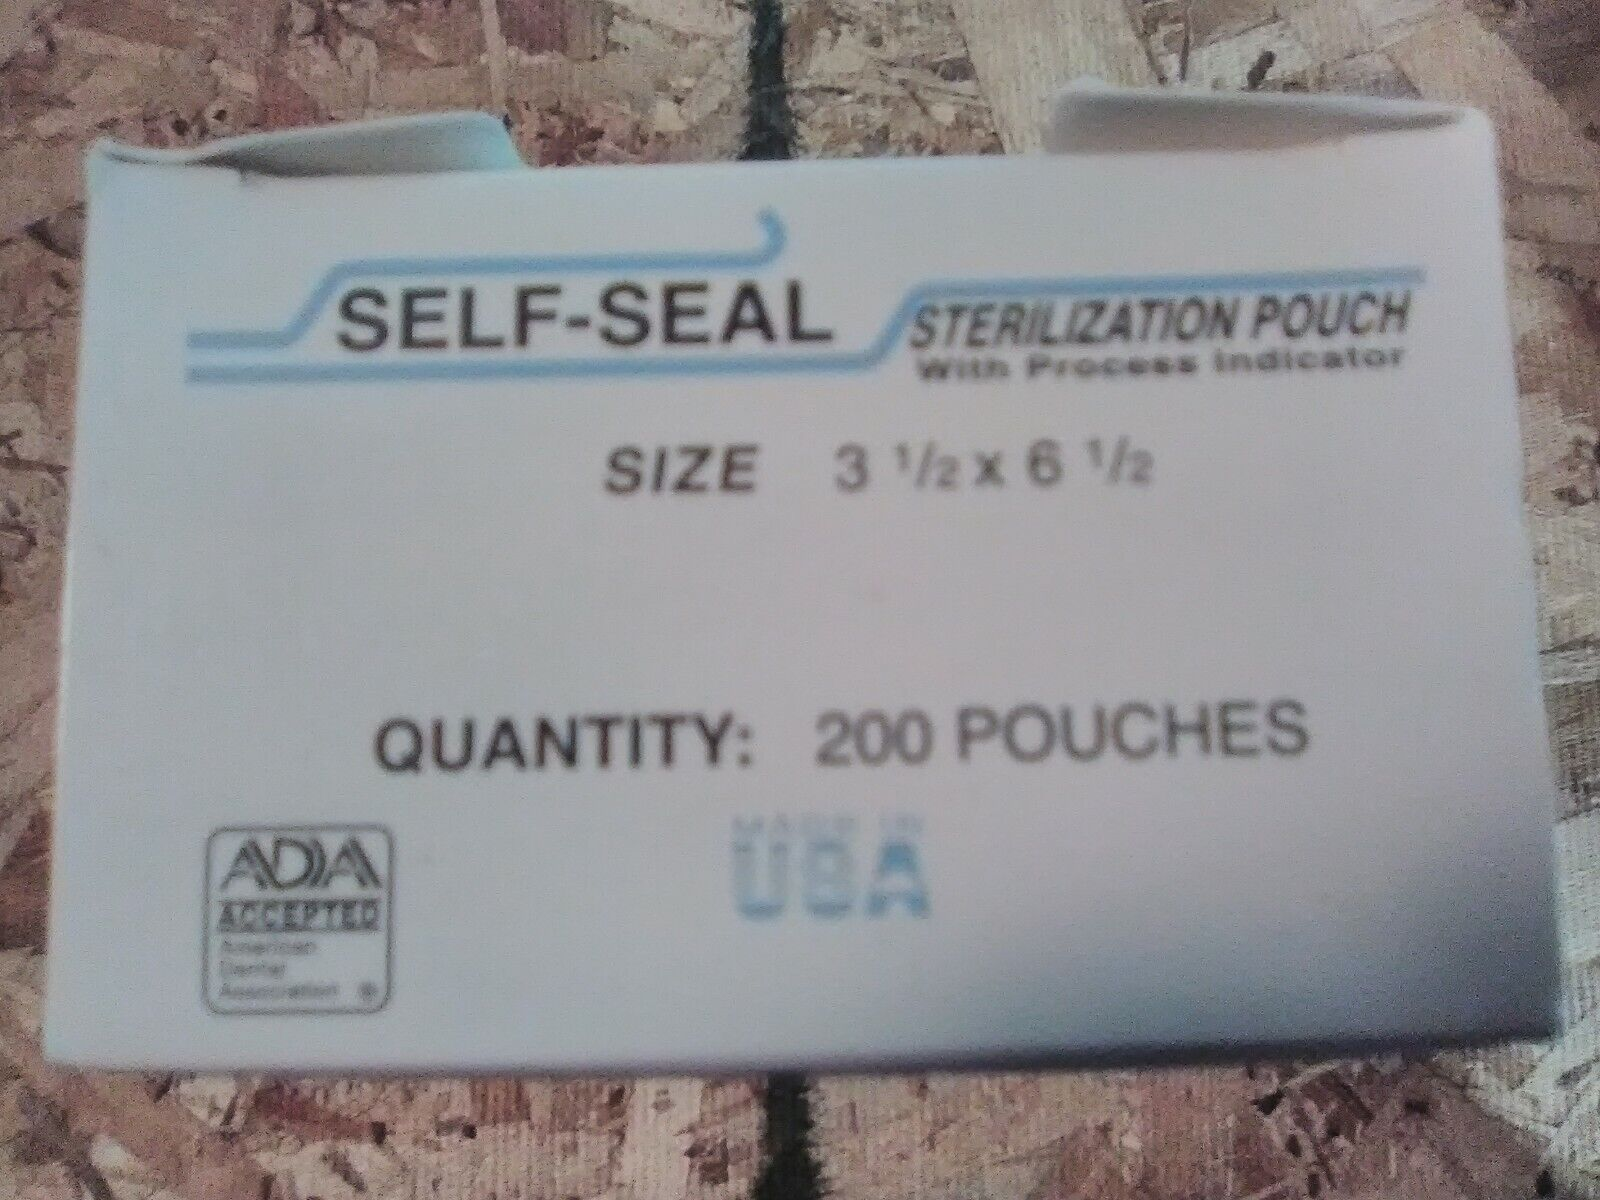 400 3.5x6.5 Sterilization Bags Self-Seal Autoclave Pouches Dental TATTOO Labs - $23.57